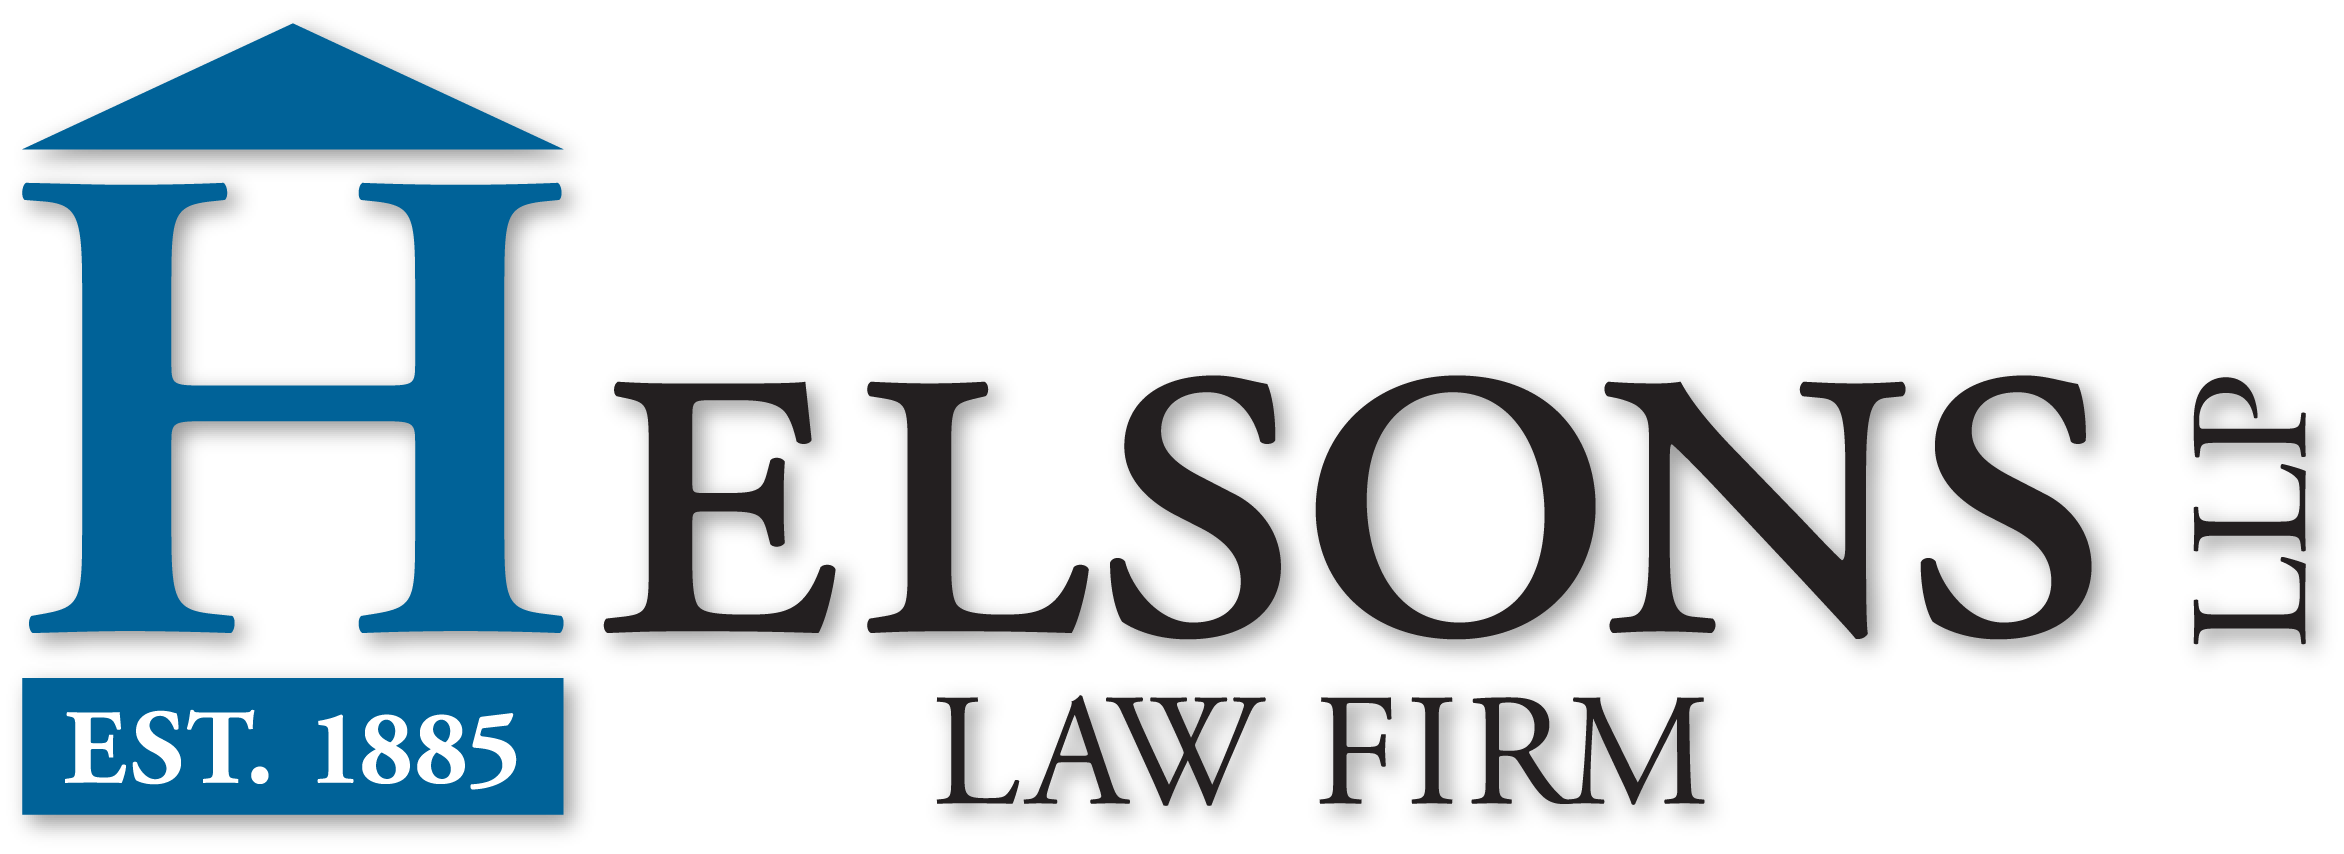 Helsons LLP Law Firm